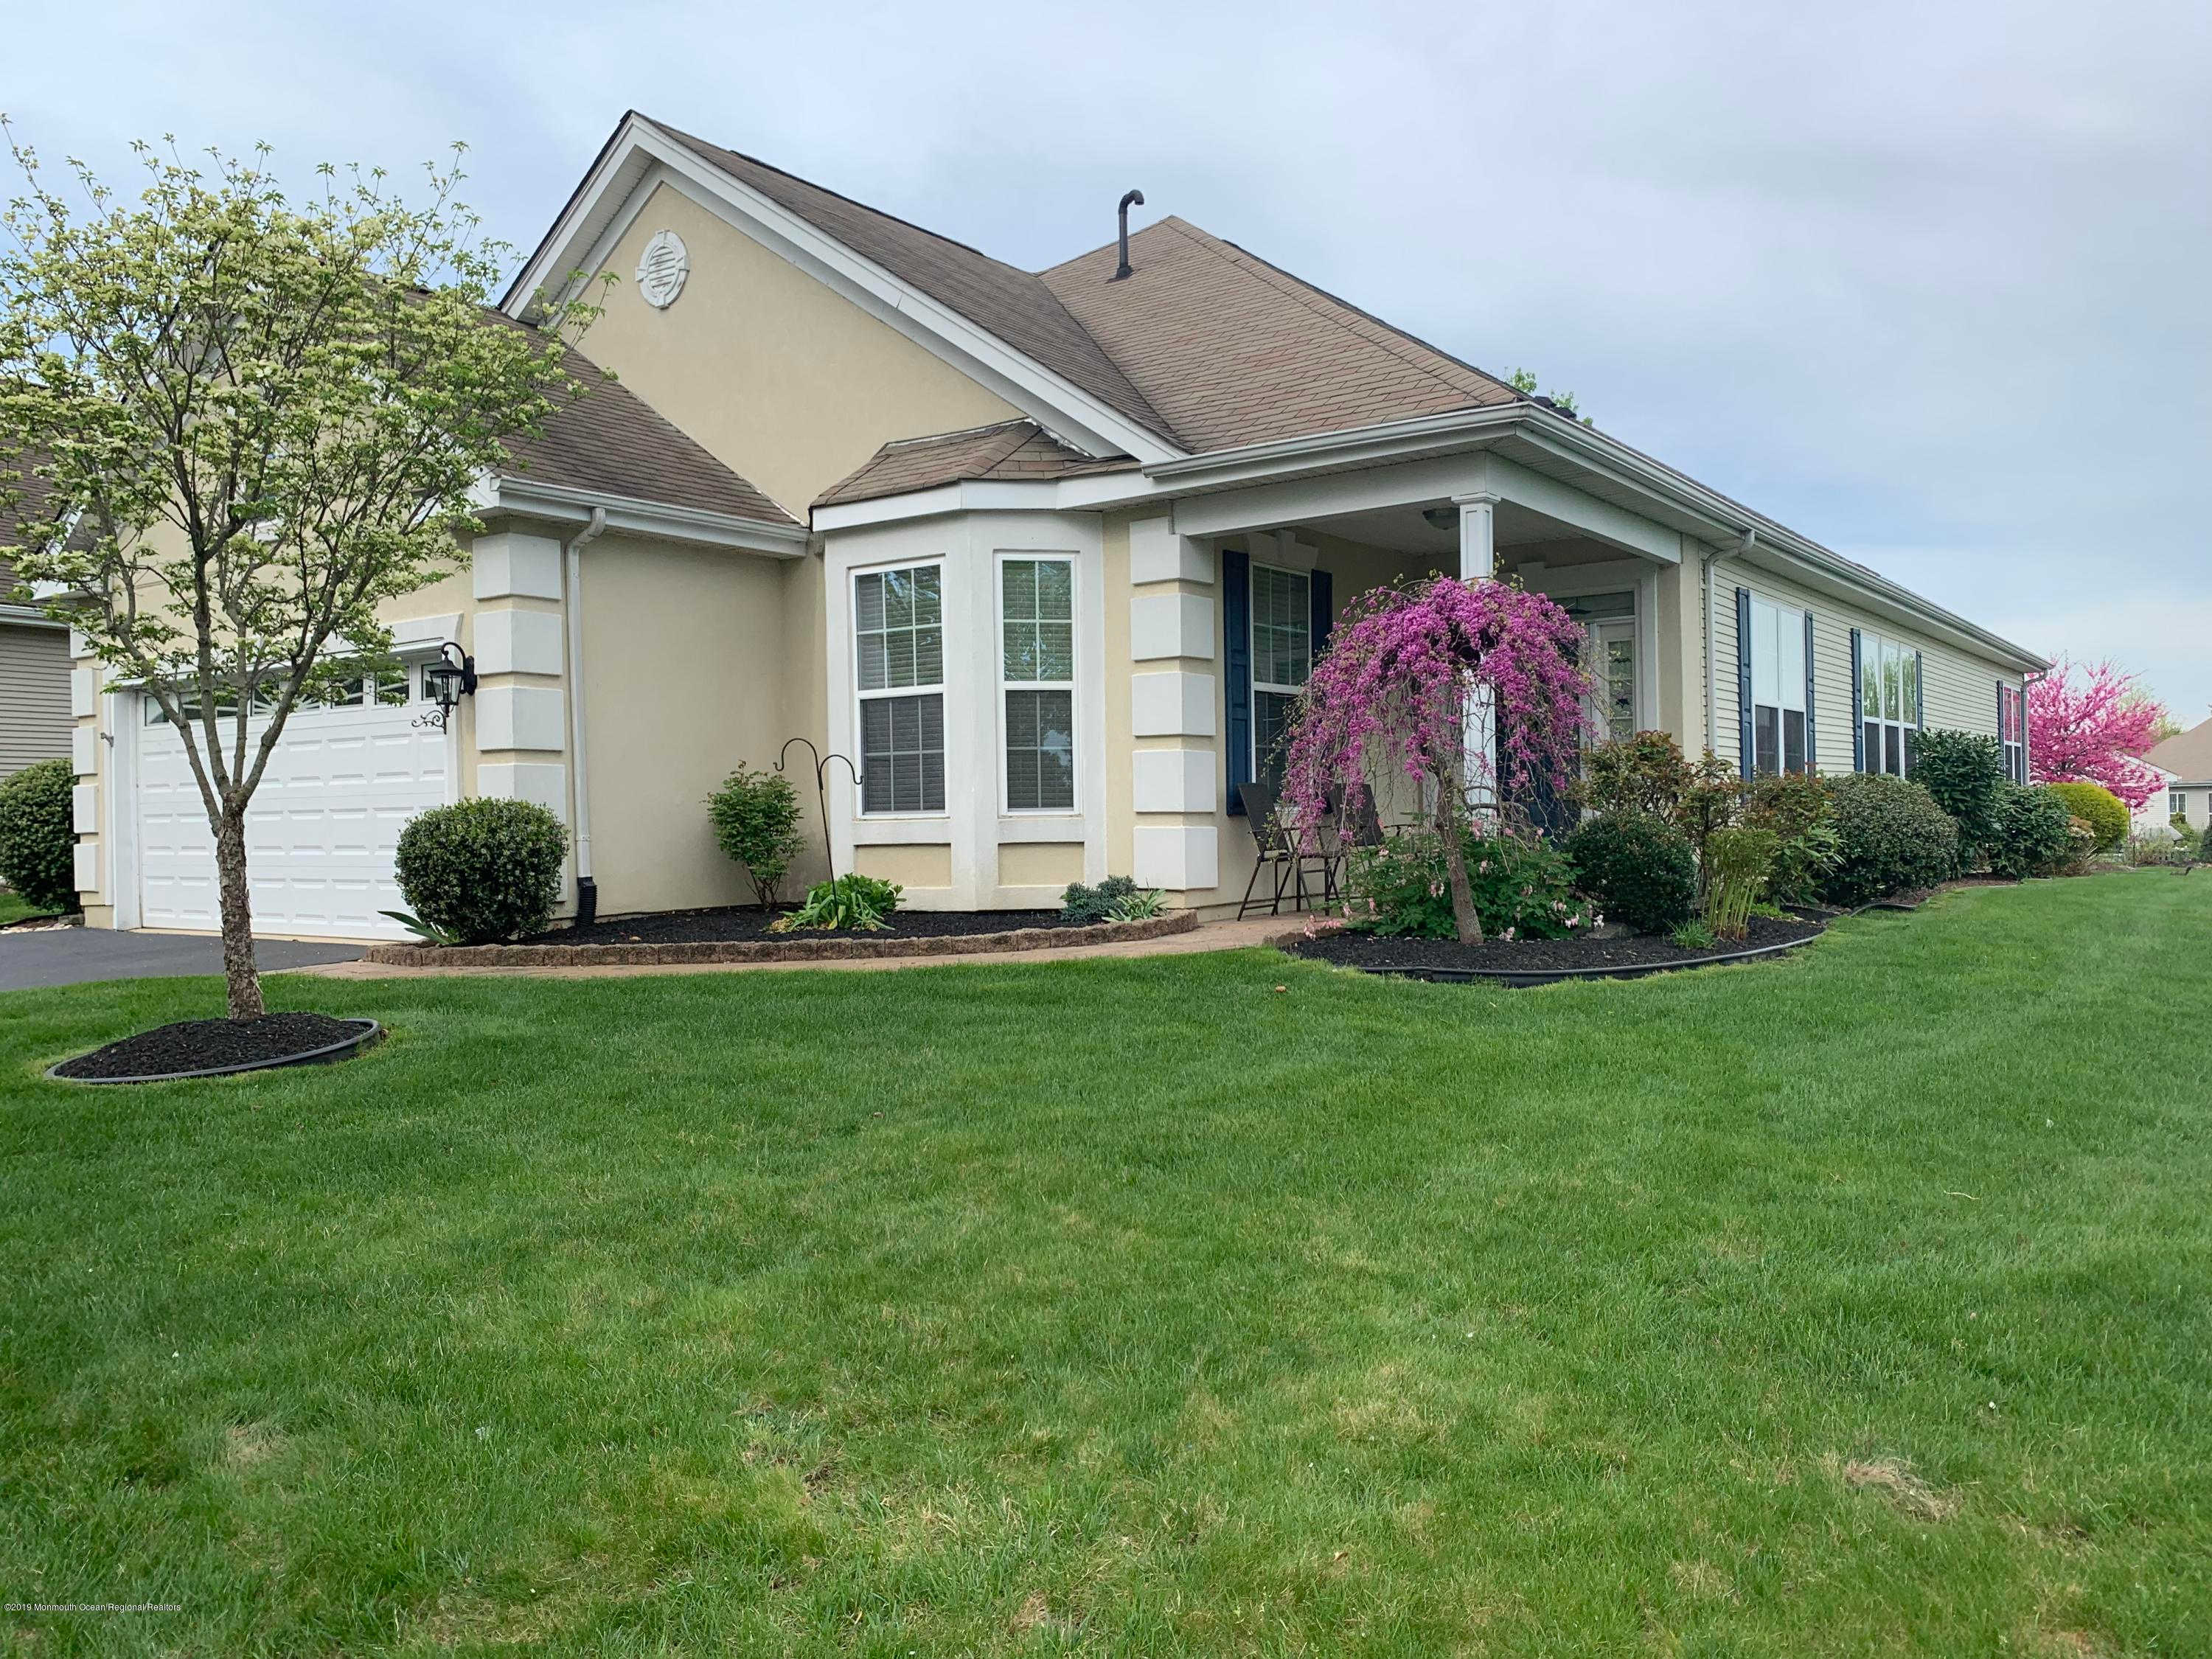 52 Minuteman Circle, Allentown, NJ 08501 now has a new price of $408,000!